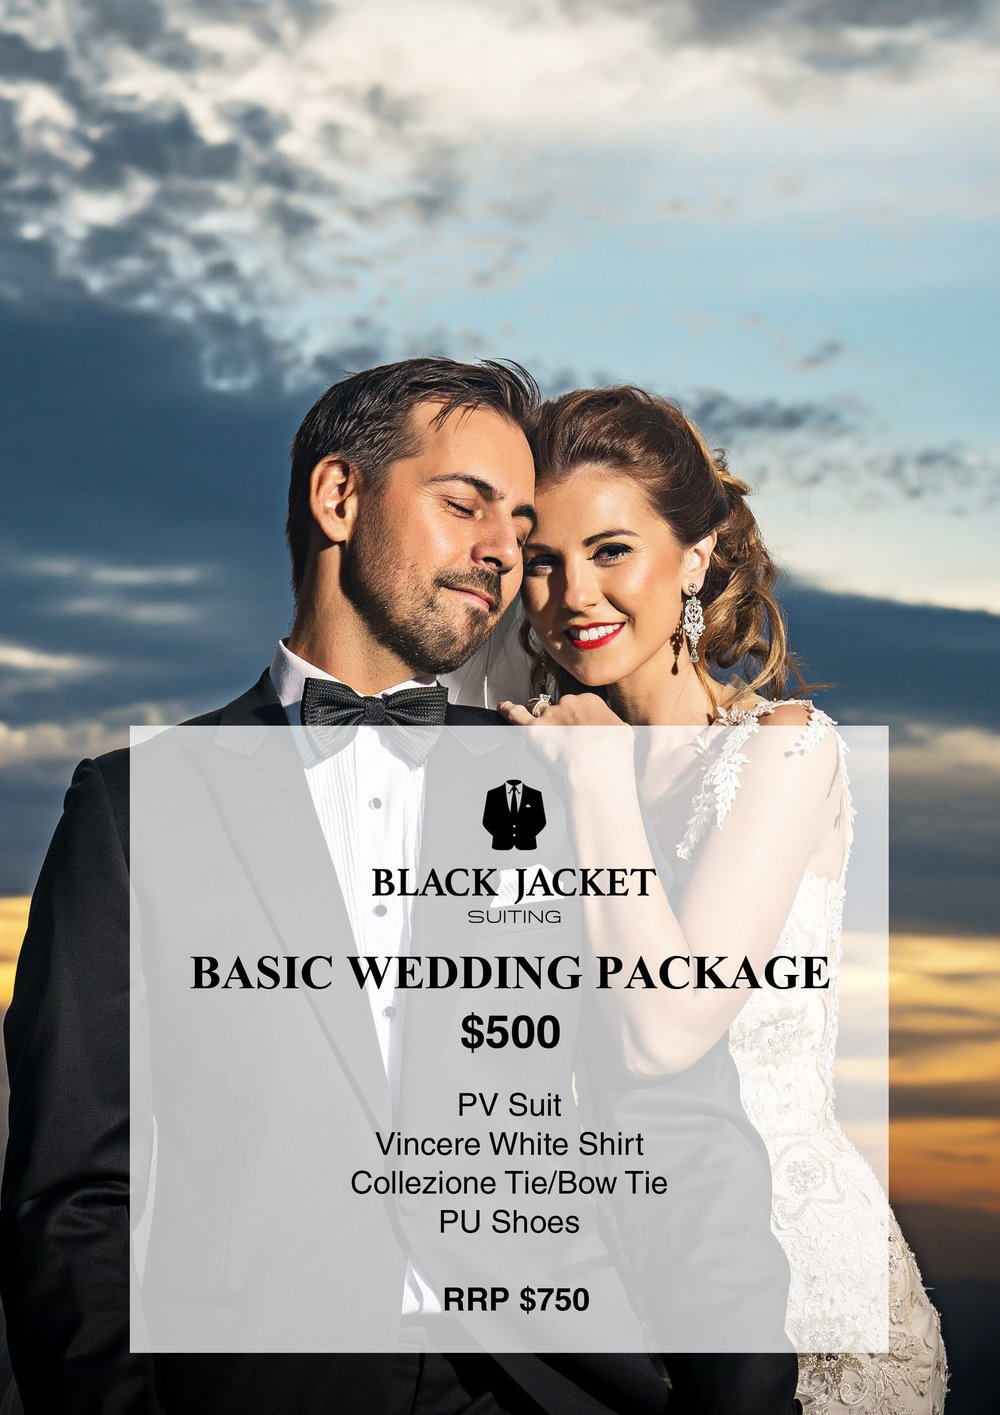 Basic Wedding Package w Logo-min.jpg